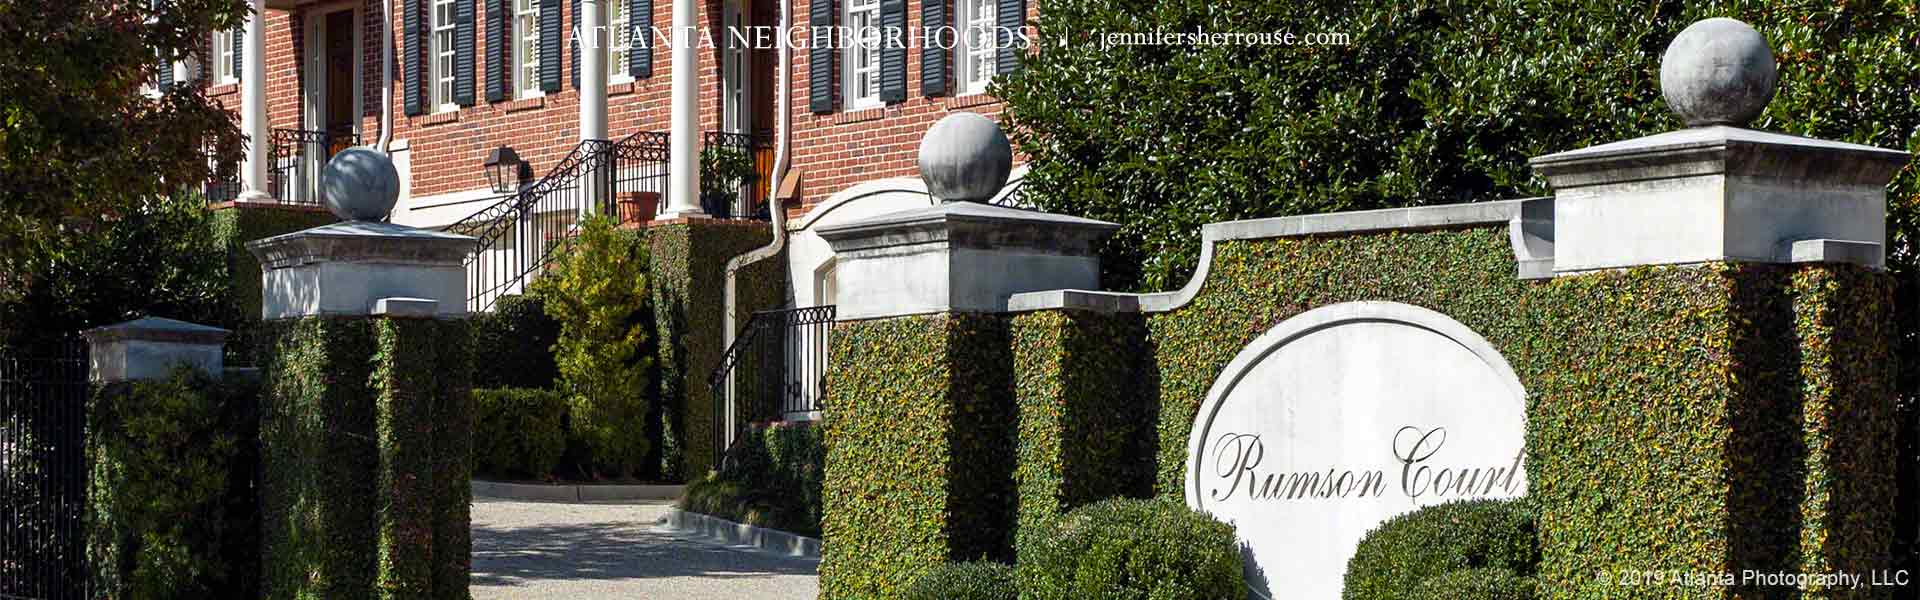 Rumson Court townhouses, Atlanta (Buckhead)